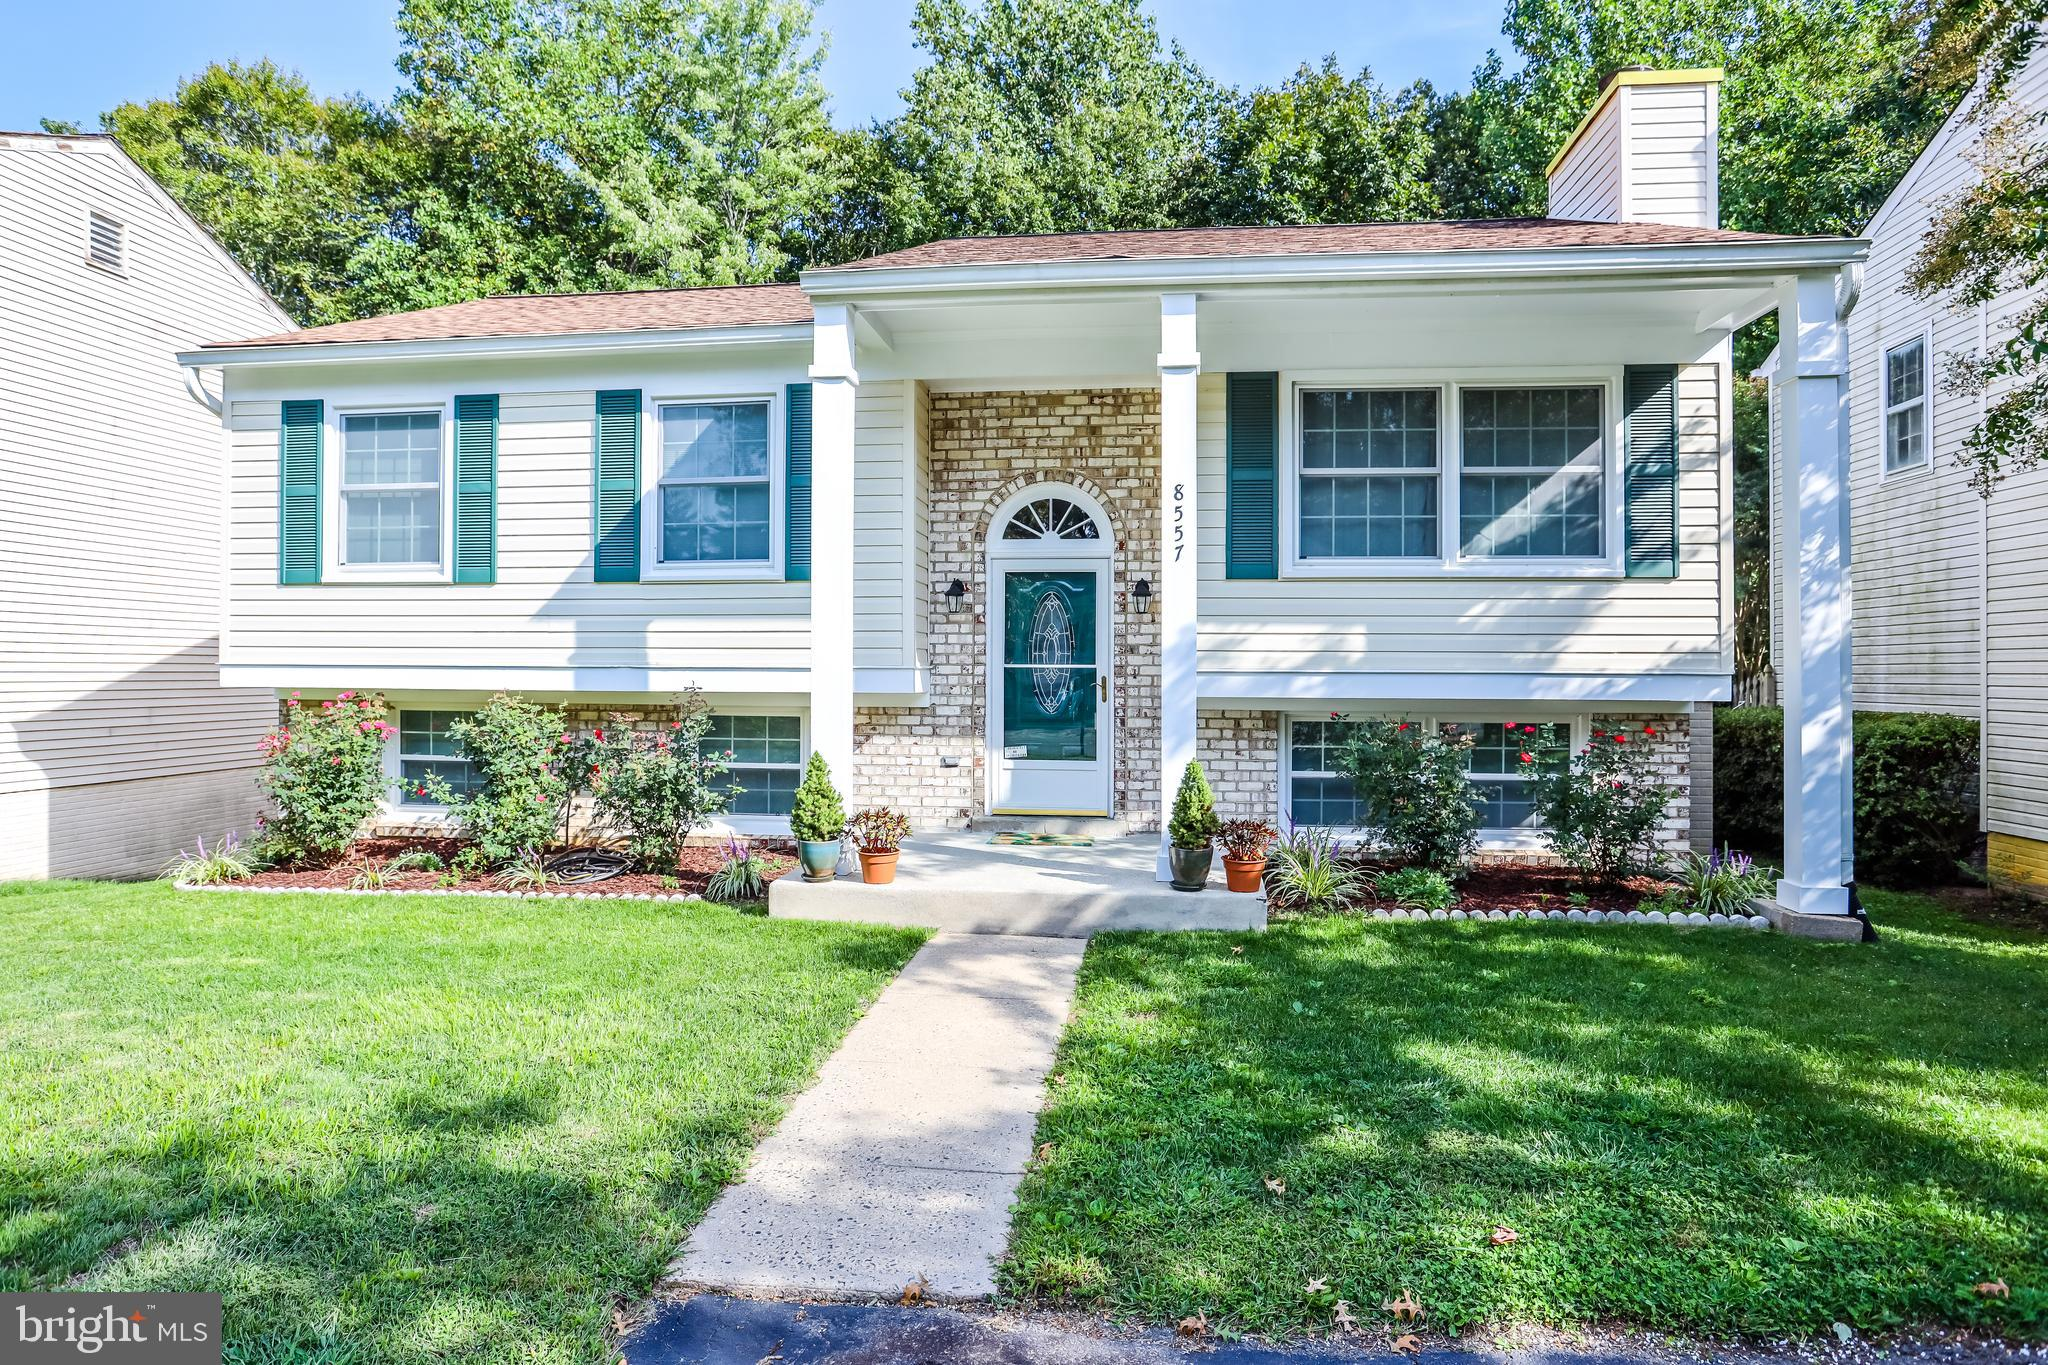 Numerous recent upgrades to this 5 Bedroom, 2 Bath Single Family Home located in excellent Springfield community. Classic brick front with walkout, fully finished basement and fenced in backyard.                                                                                         Roof, windows, shutters, HVAC, water heater, back patio all less than two years old! Roof and Windows carry warranty. Brand new carpet installed throughout in September of 2019! Property is empty and ready for new owner. House offers membership to Rolling Valley Swim and Tennis Club. Owner will pay up to $460 for 2020 Season which will open around 1 April 2020.